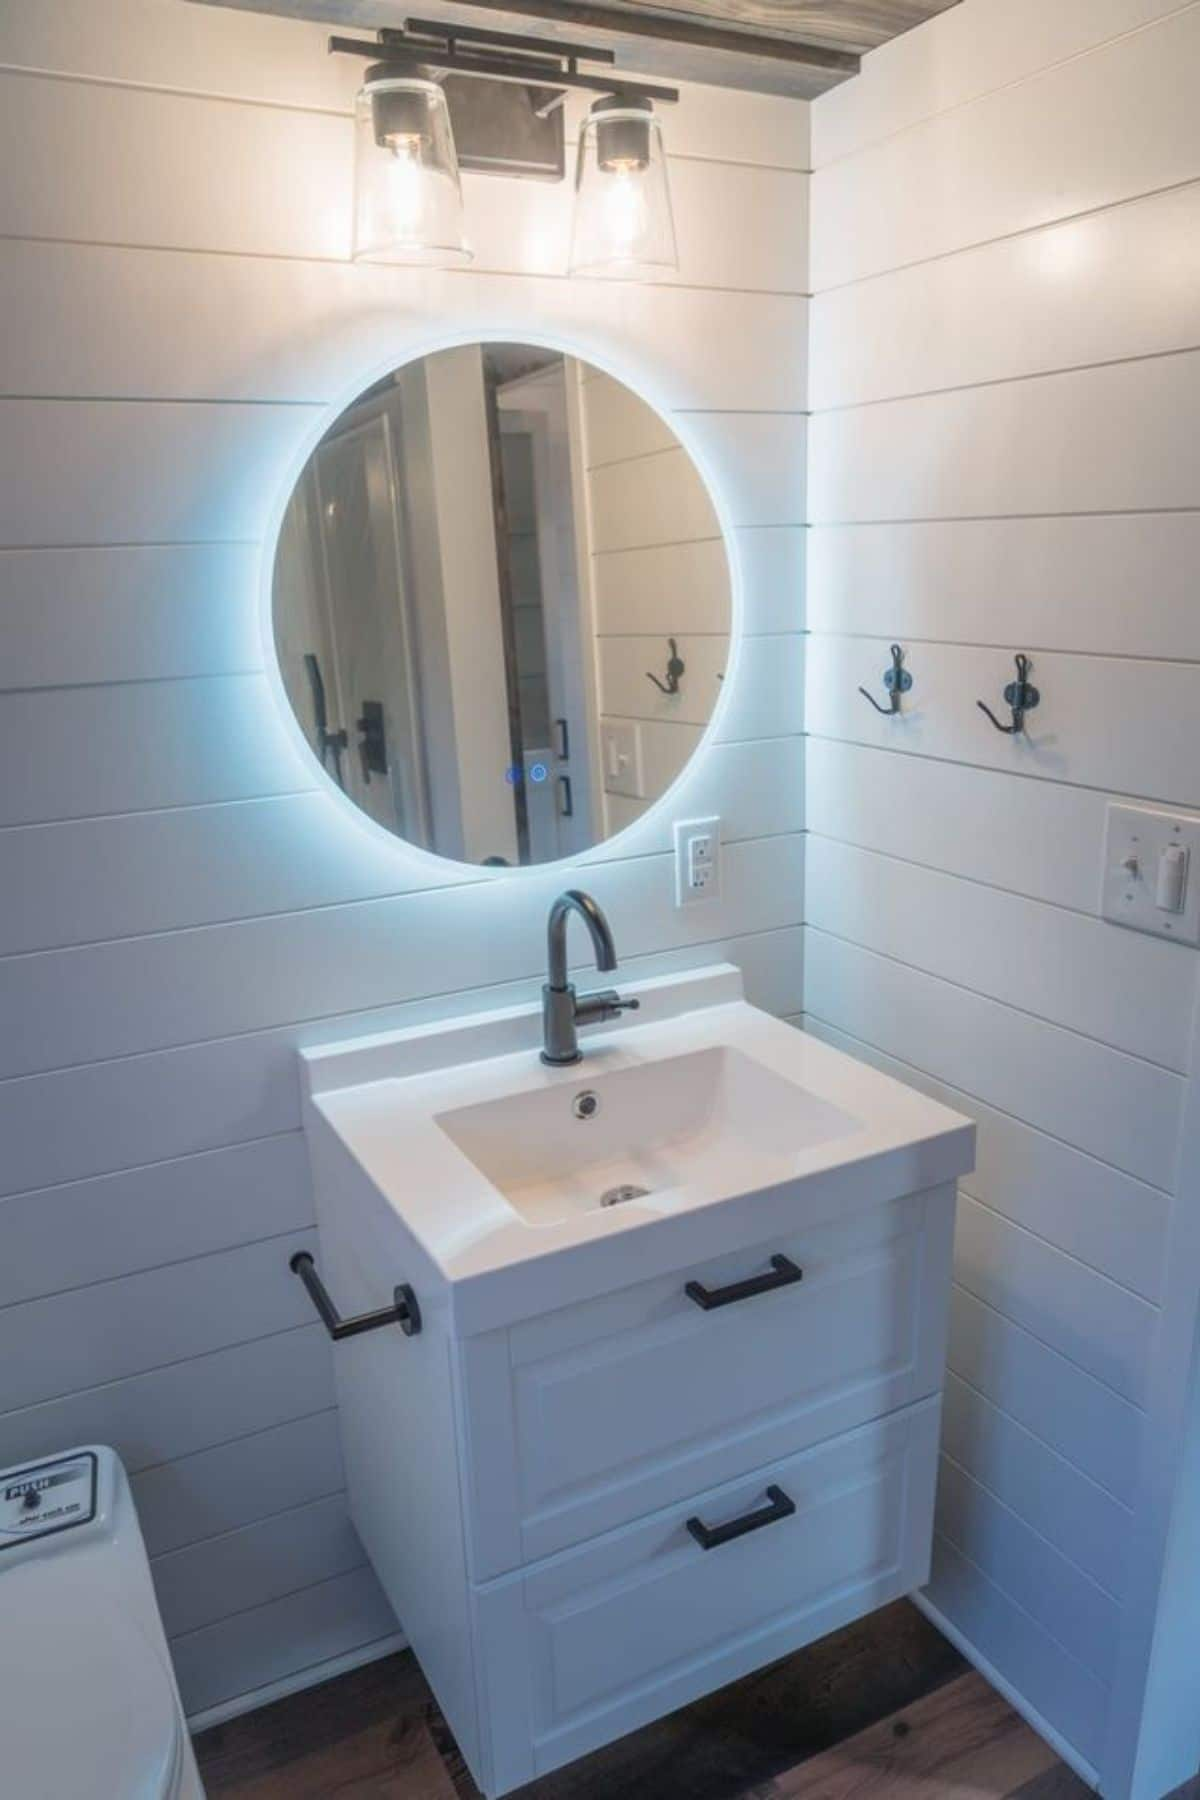 Round lit mirror on wall above small white vanity